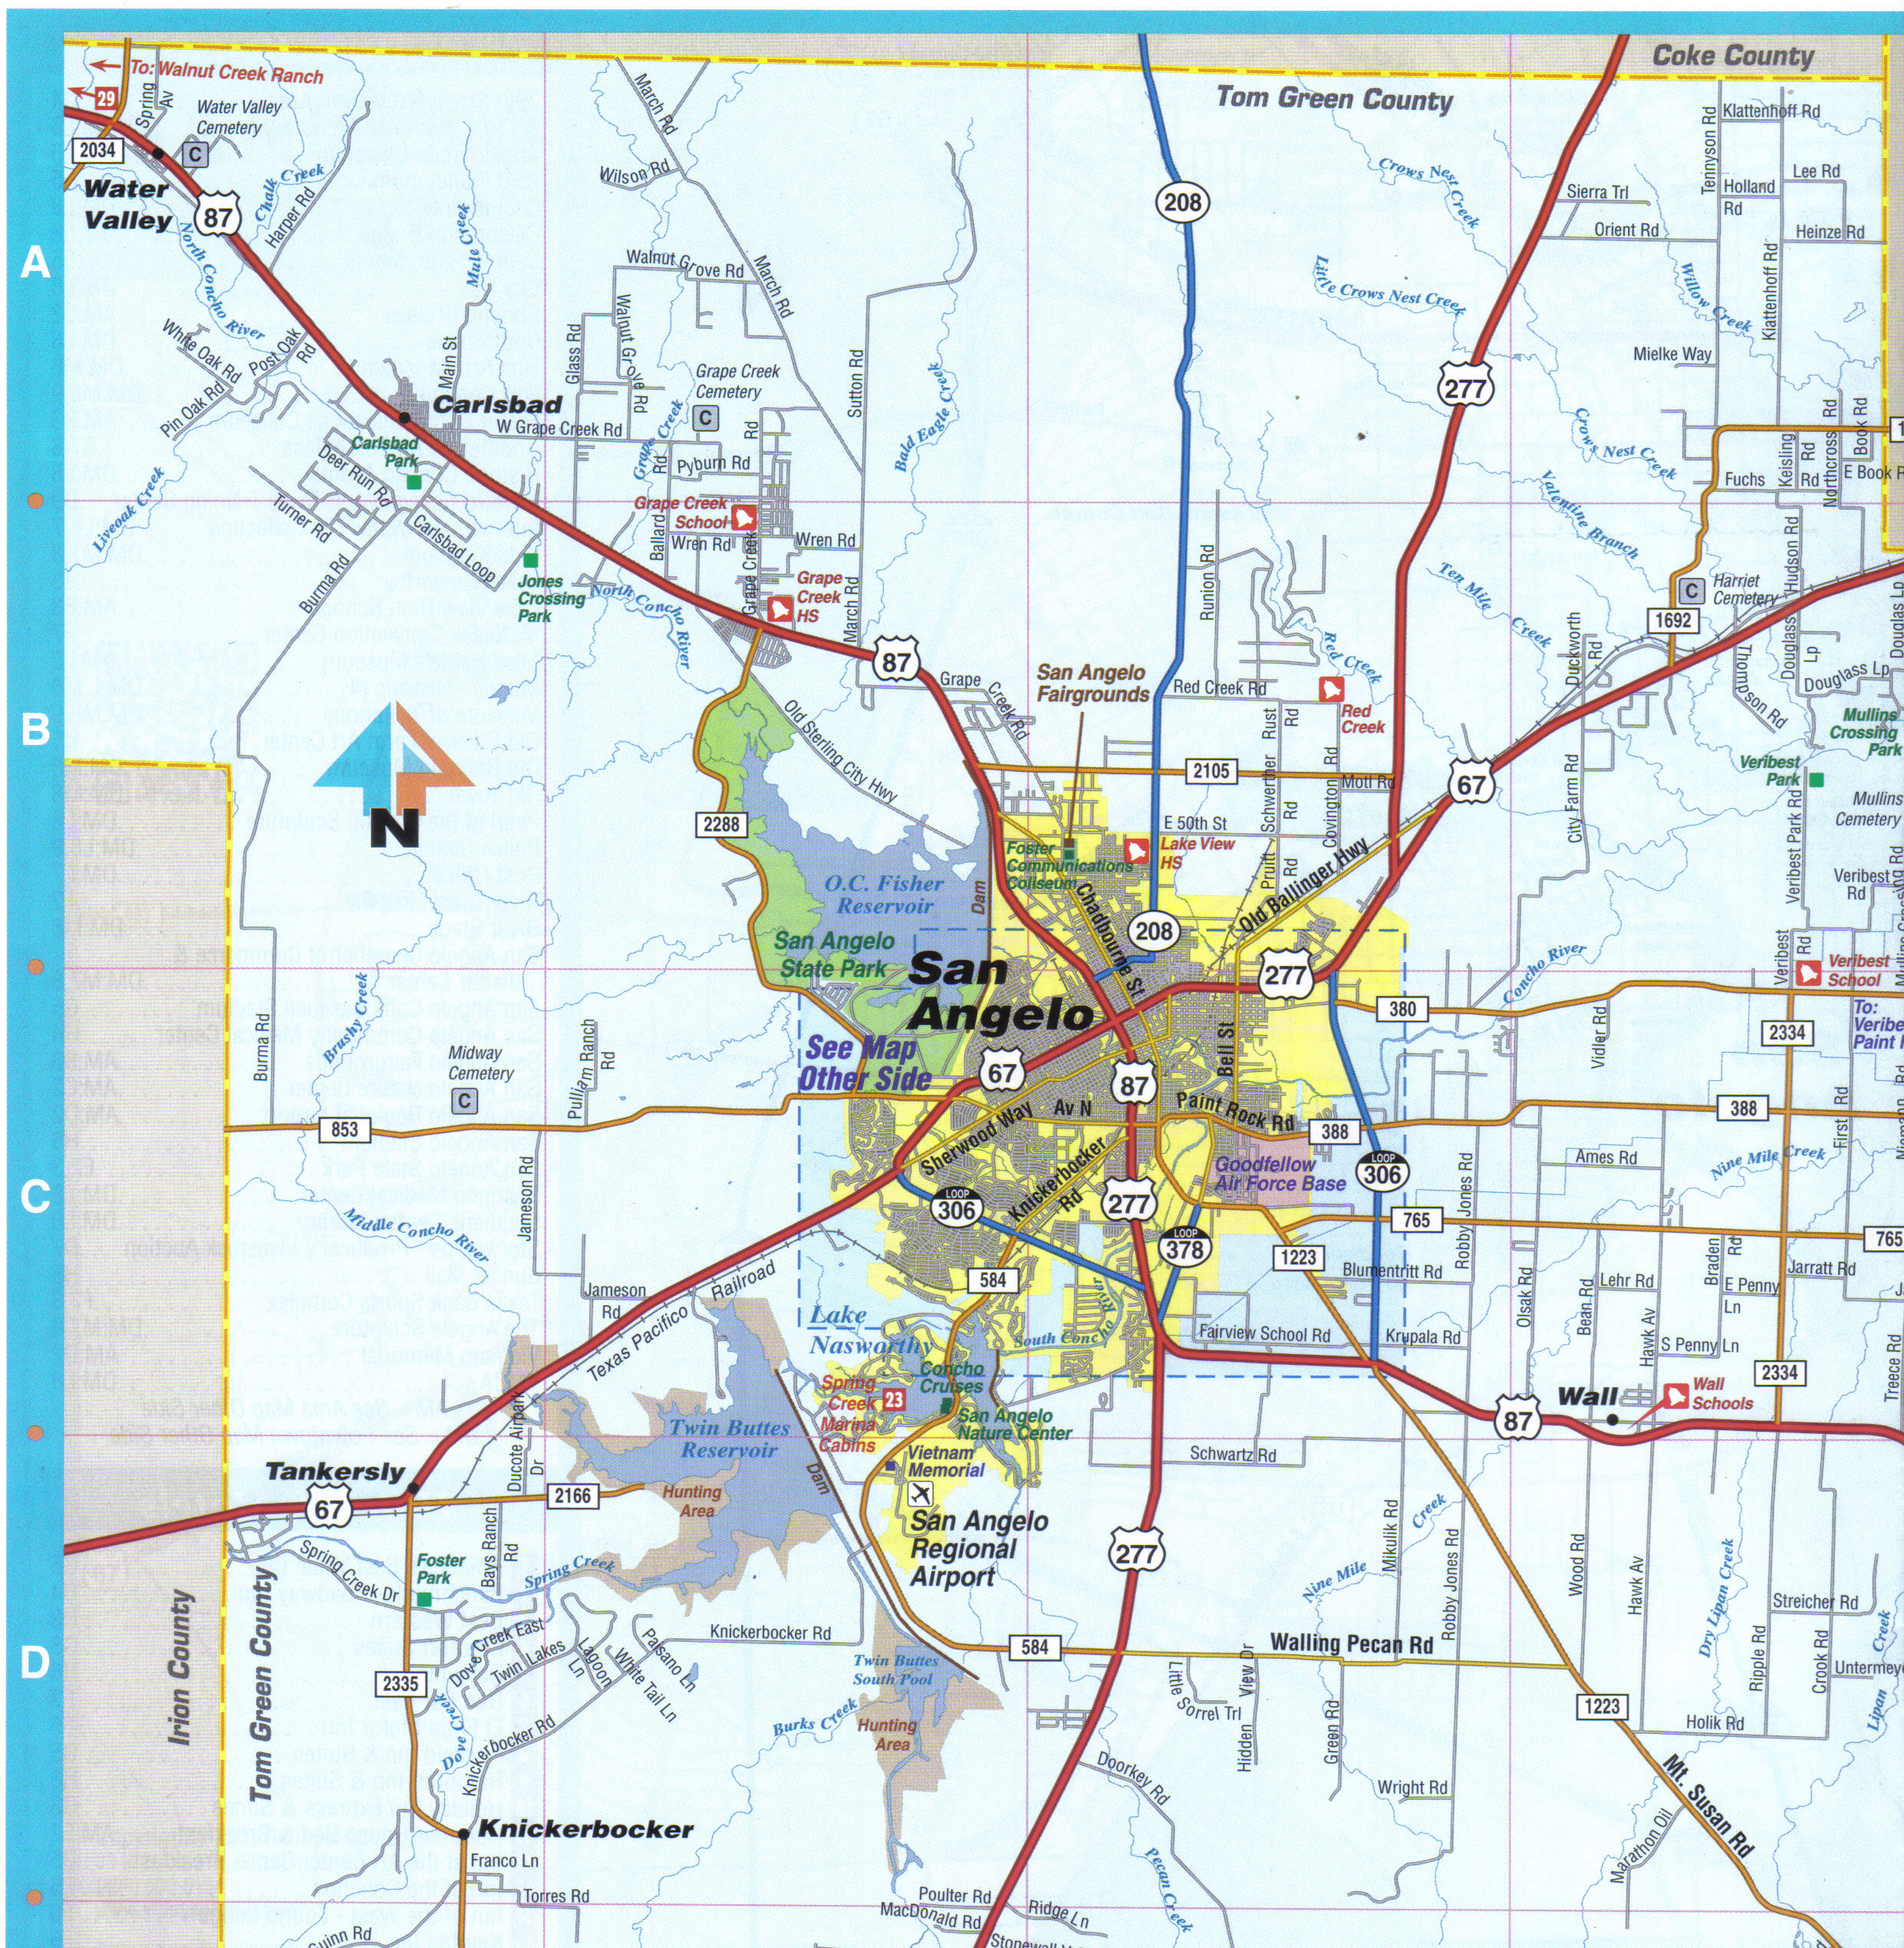 City Map Of San Angelo Texas - Roundtripticket - Street Map Of San Angelo Texas